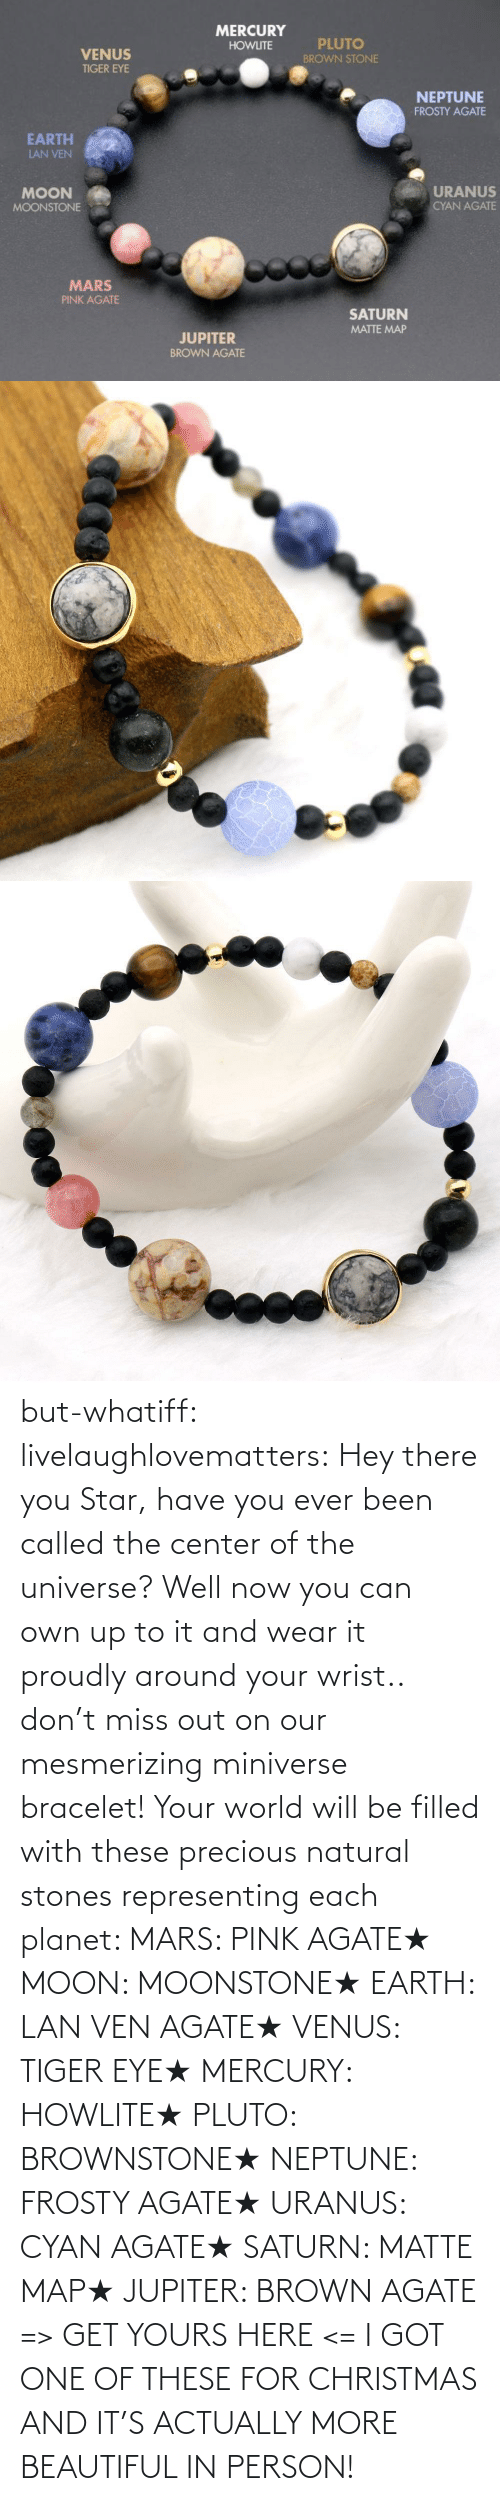 brown: but-whatiff:  livelaughlovematters:  Hey there you Star, have you ever been called the center of the universe? Well now you can own up to it and wear it proudly around your wrist.. don't miss out on our mesmerizing miniverse bracelet! Your world will be filled with these precious natural stones representing each planet:  MARS: PINK AGATE★ MOON: MOONSTONE★ EARTH: LAN VEN AGATE★ VENUS: TIGER EYE★ MERCURY: HOWLITE★ PLUTO: BROWNSTONE★ NEPTUNE: FROSTY AGATE★ URANUS: CYAN AGATE★ SATURN: MATTE MAP★ JUPITER: BROWN AGATE => GET YOURS HERE <=  I GOT ONE OF THESE FOR CHRISTMAS AND IT'S ACTUALLY MORE BEAUTIFUL IN PERSON!